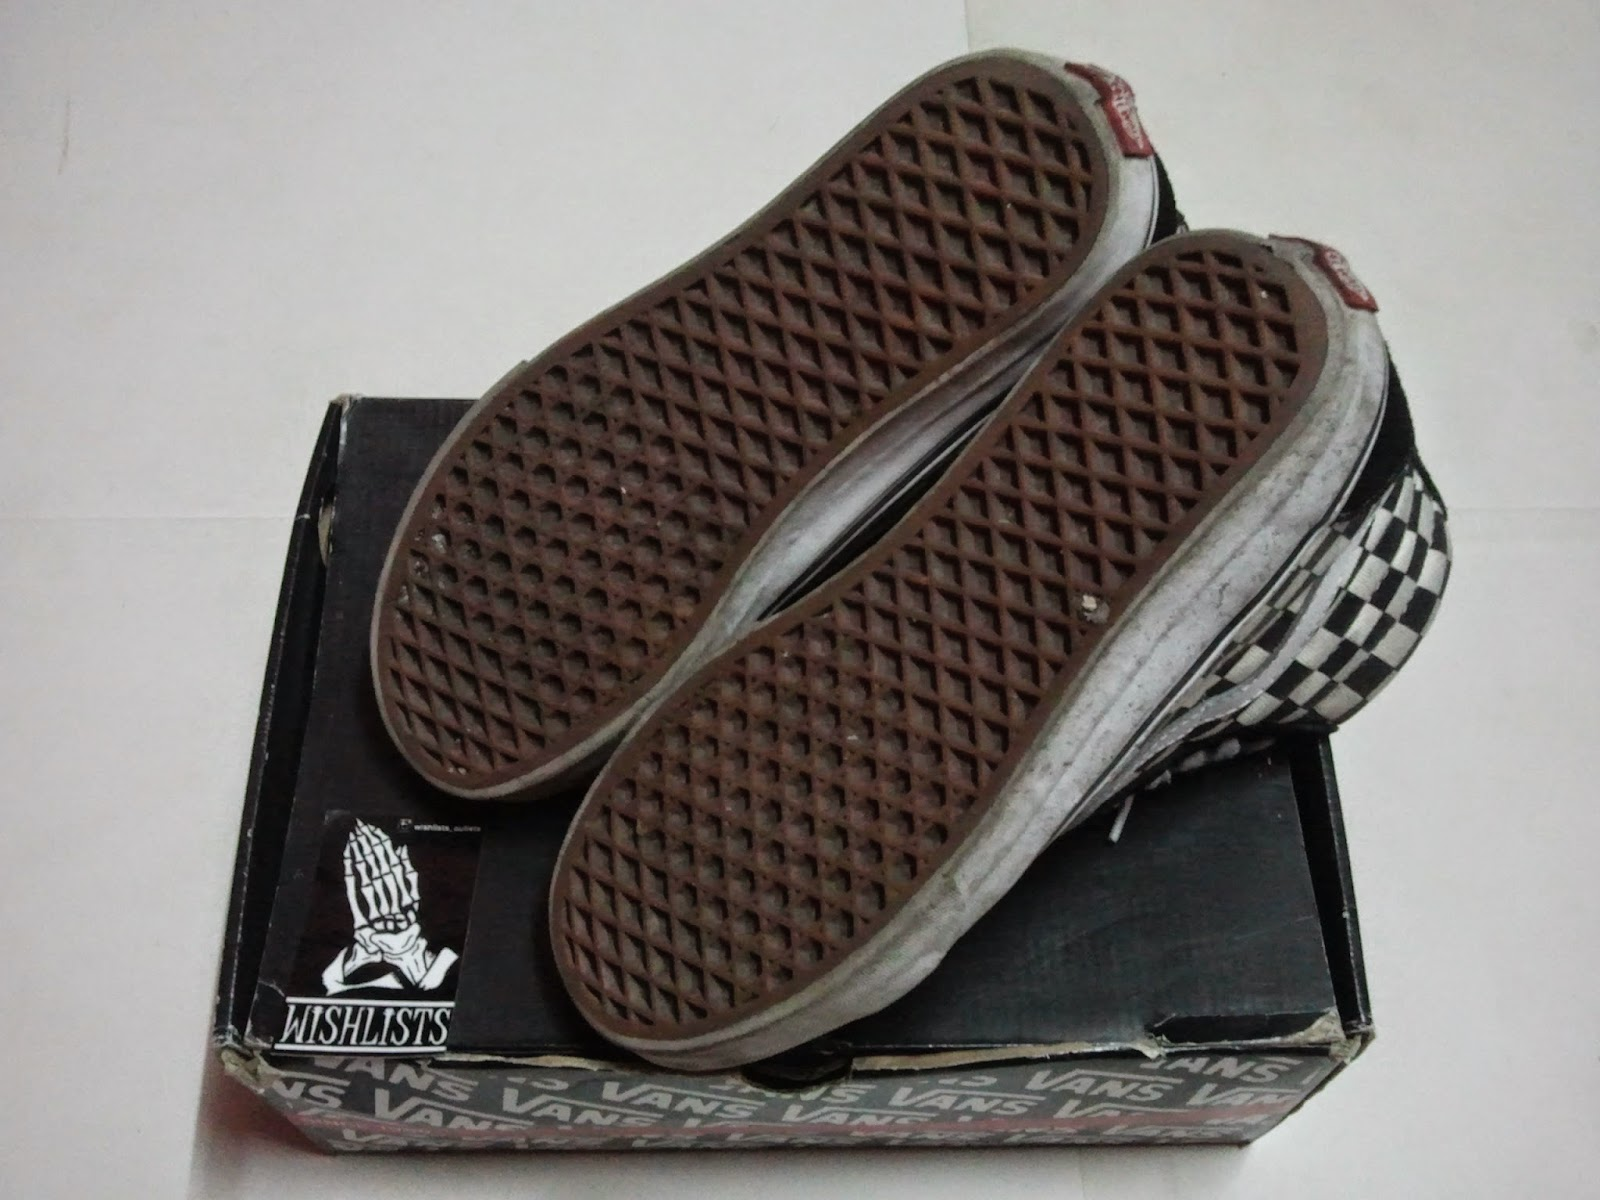 68e5b1671a (WL-2497) Sk8-Hi Checker Shoes By Bones Brigade X Vans Footwear. Price    Sold Size   us7   uk6. Color   Black White Condition   9 10. Made   China